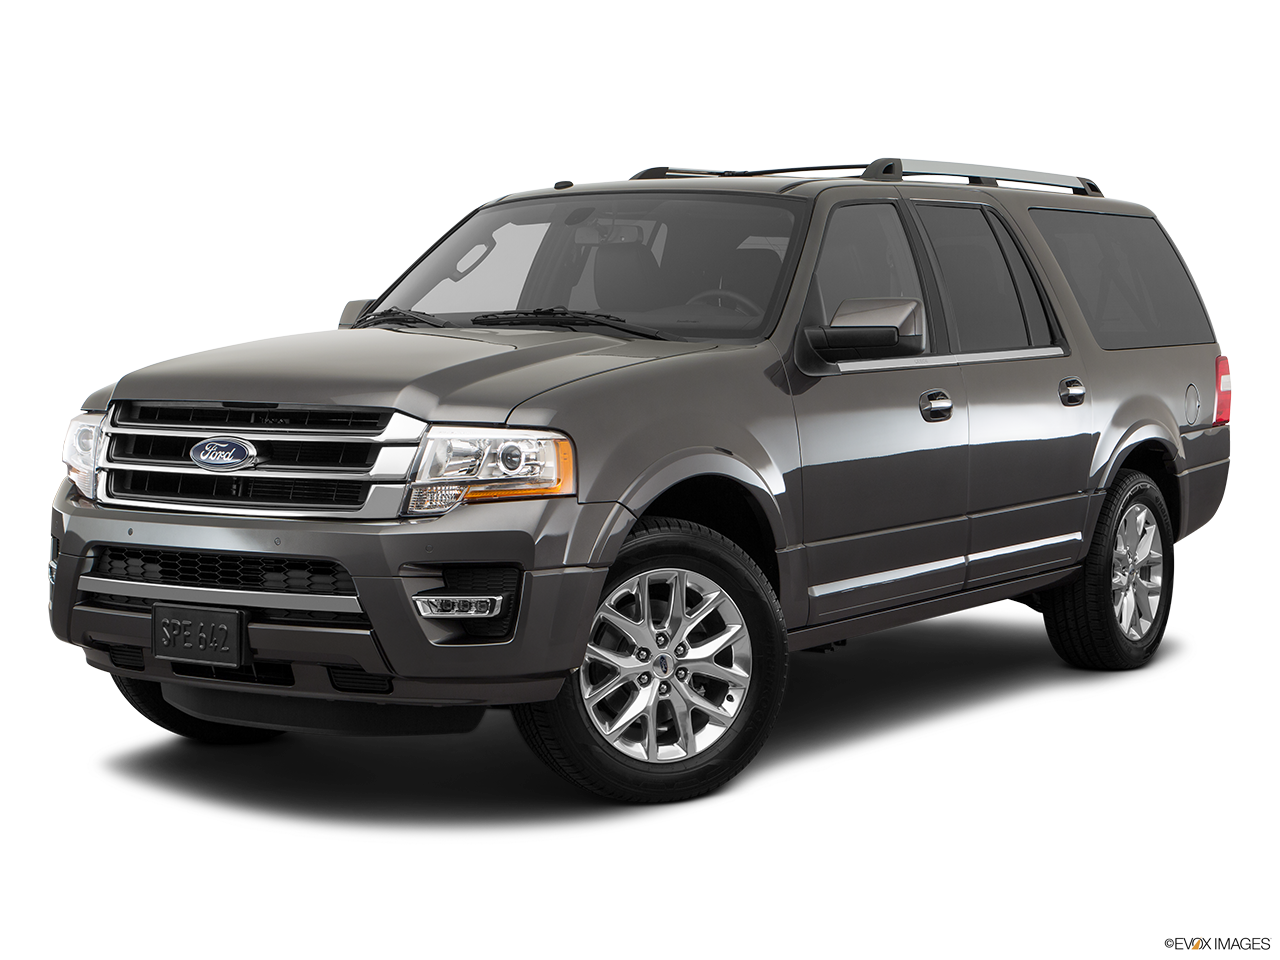 Test Drive A 2017 Ford Expedition EL at Huntington Beach Ford in Huntington Beach